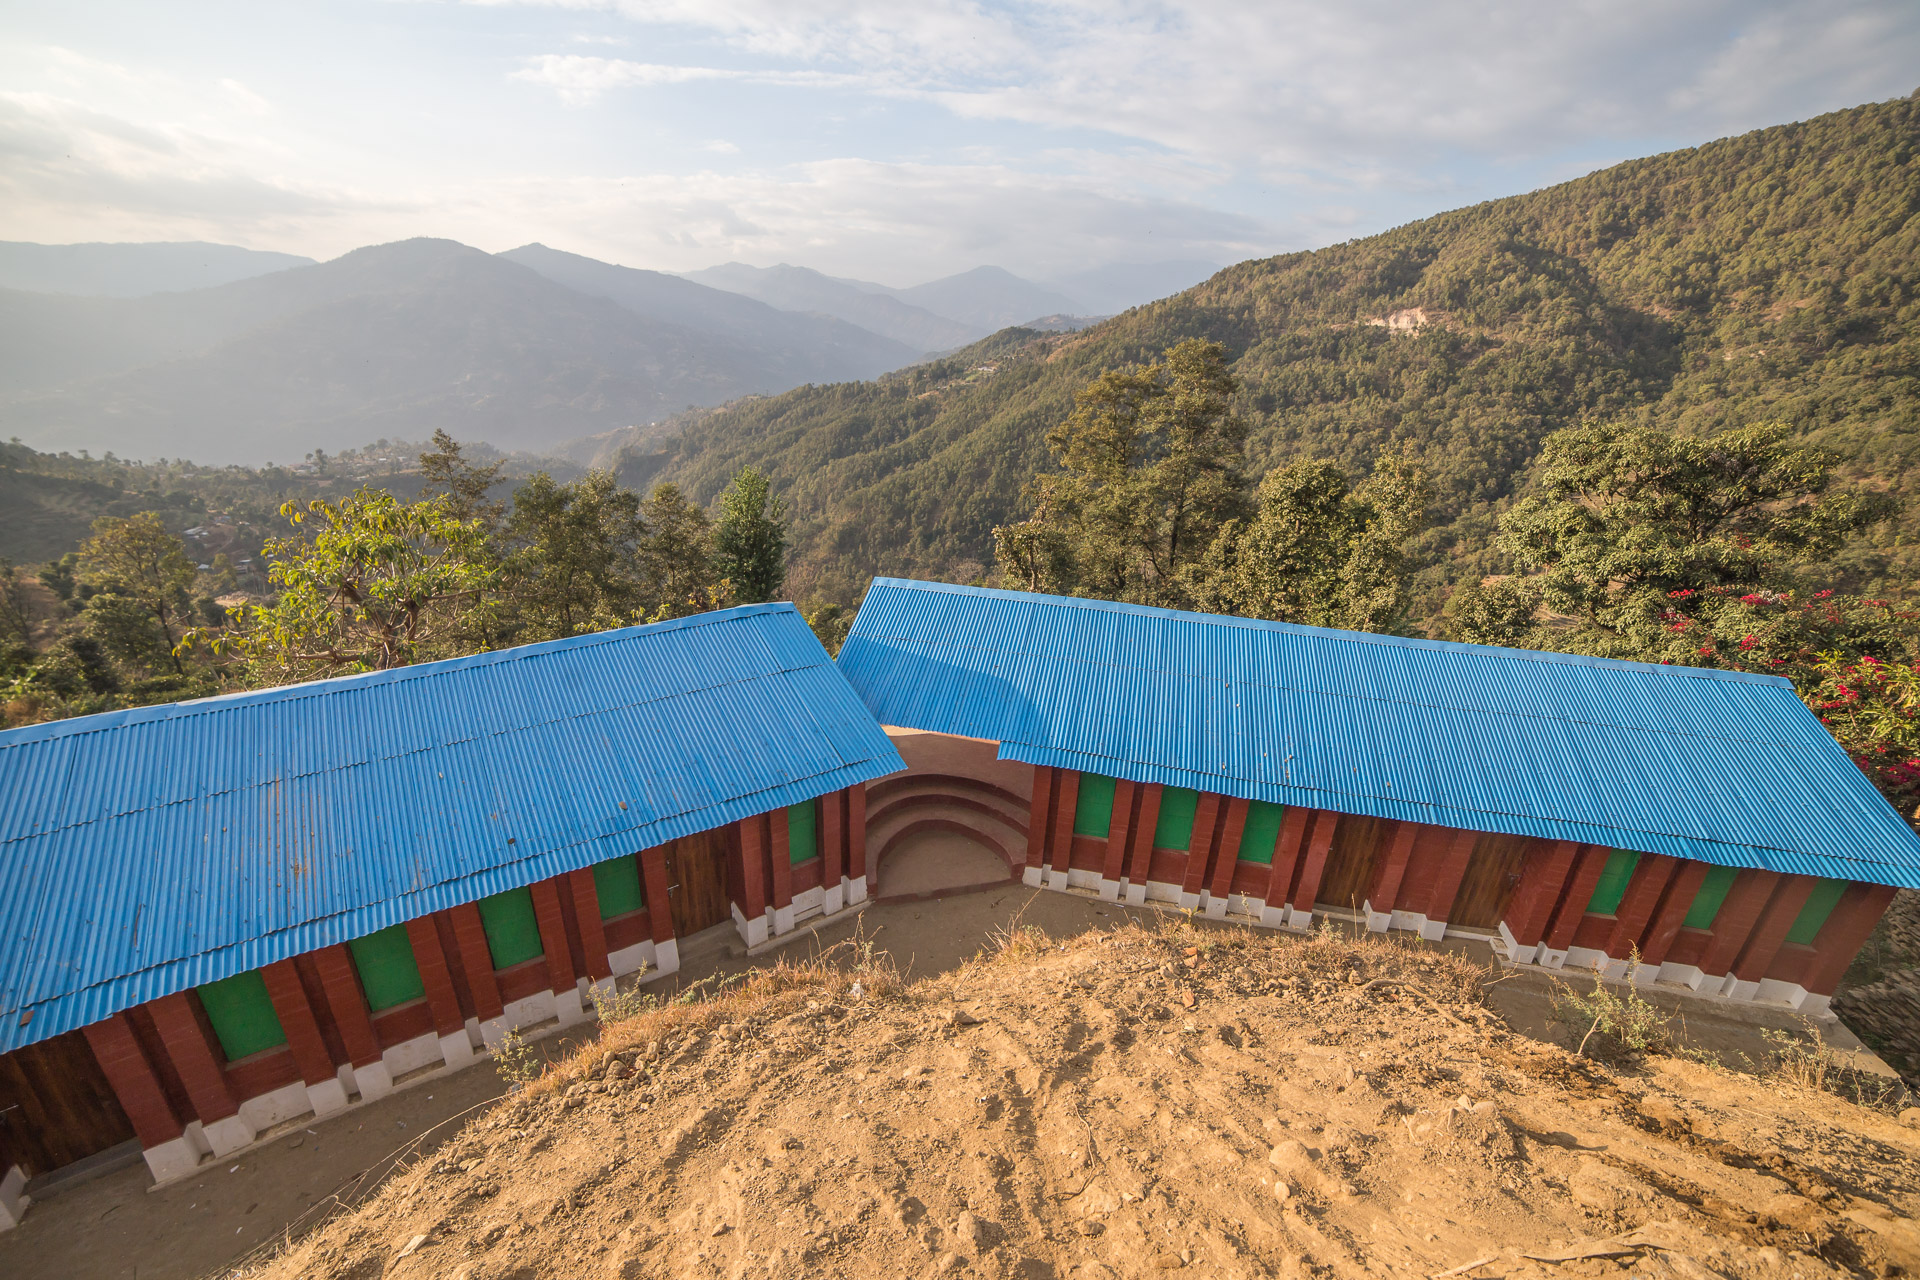 The Siddhartha Primary School - Completed July 2016